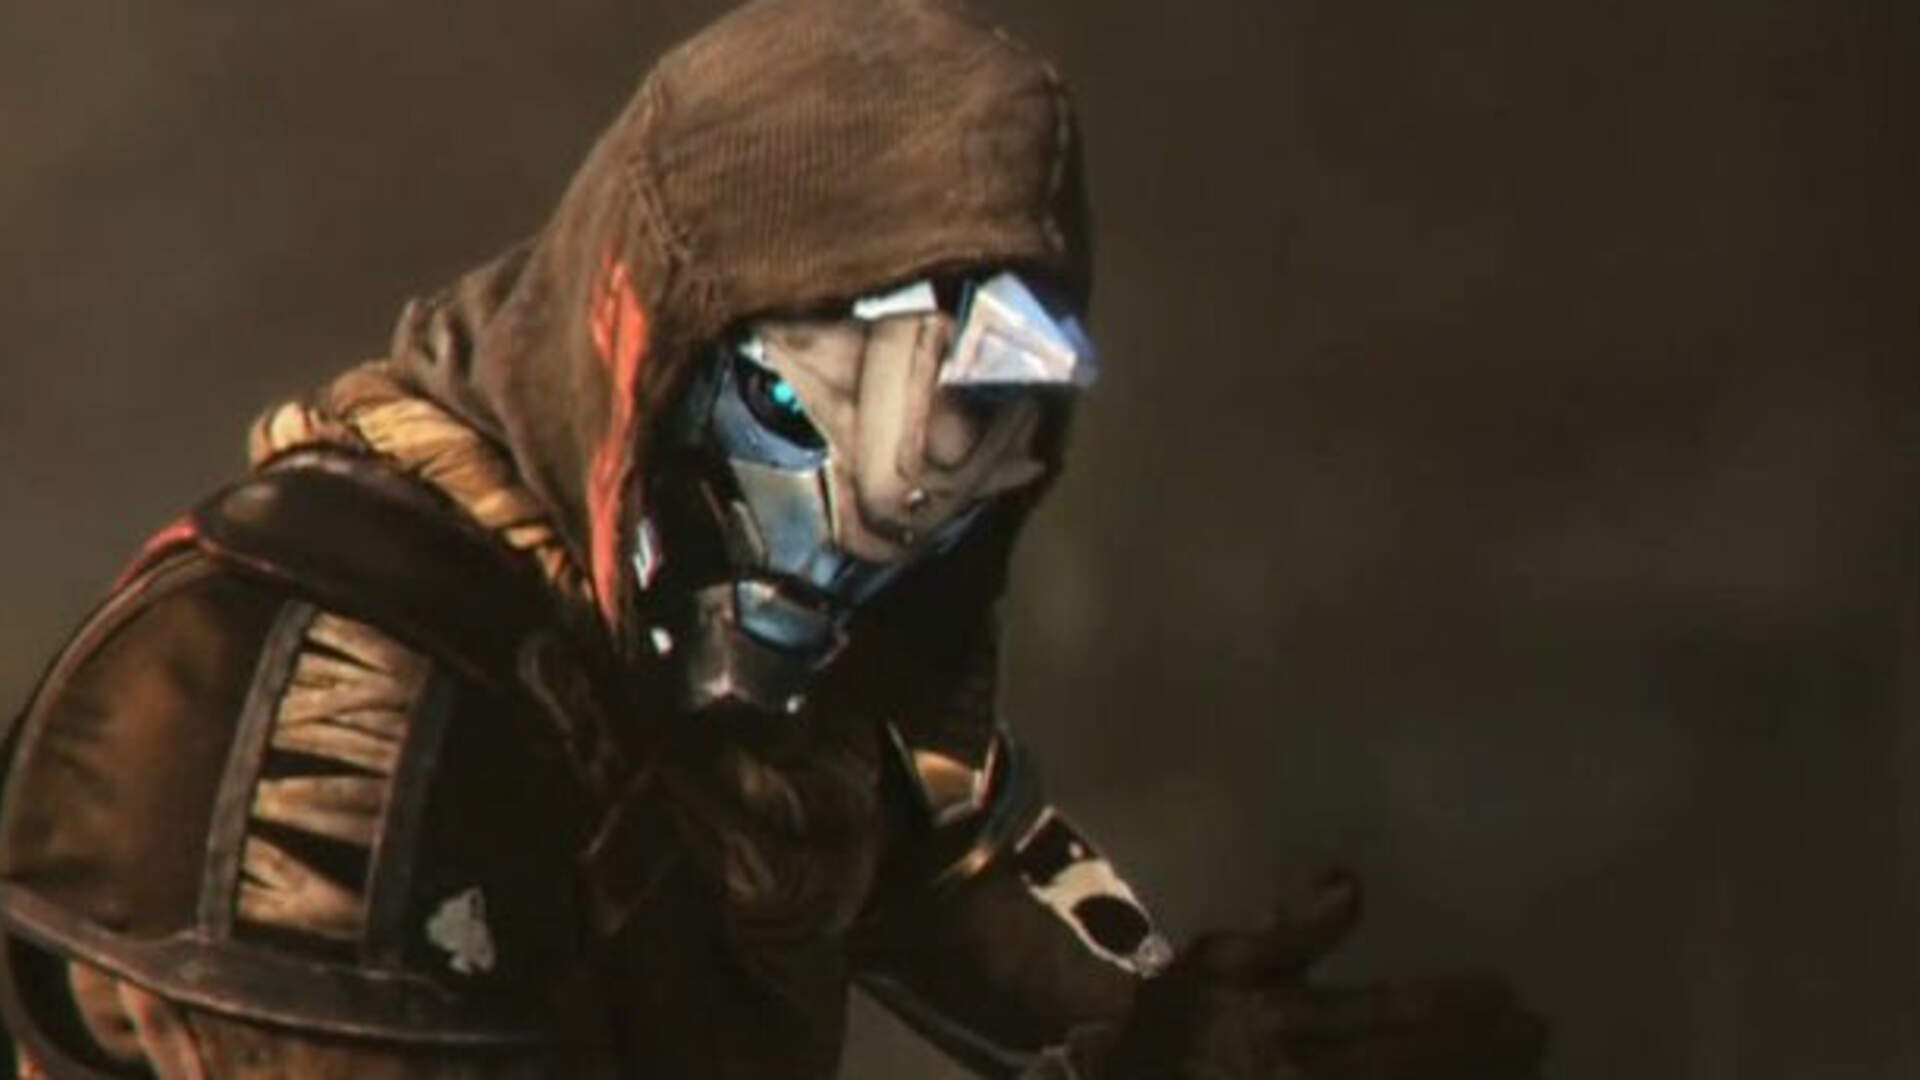 Destiny 2 Servers Go Offline in Anticipation of Major Patch [Update: Servers are Back Online]